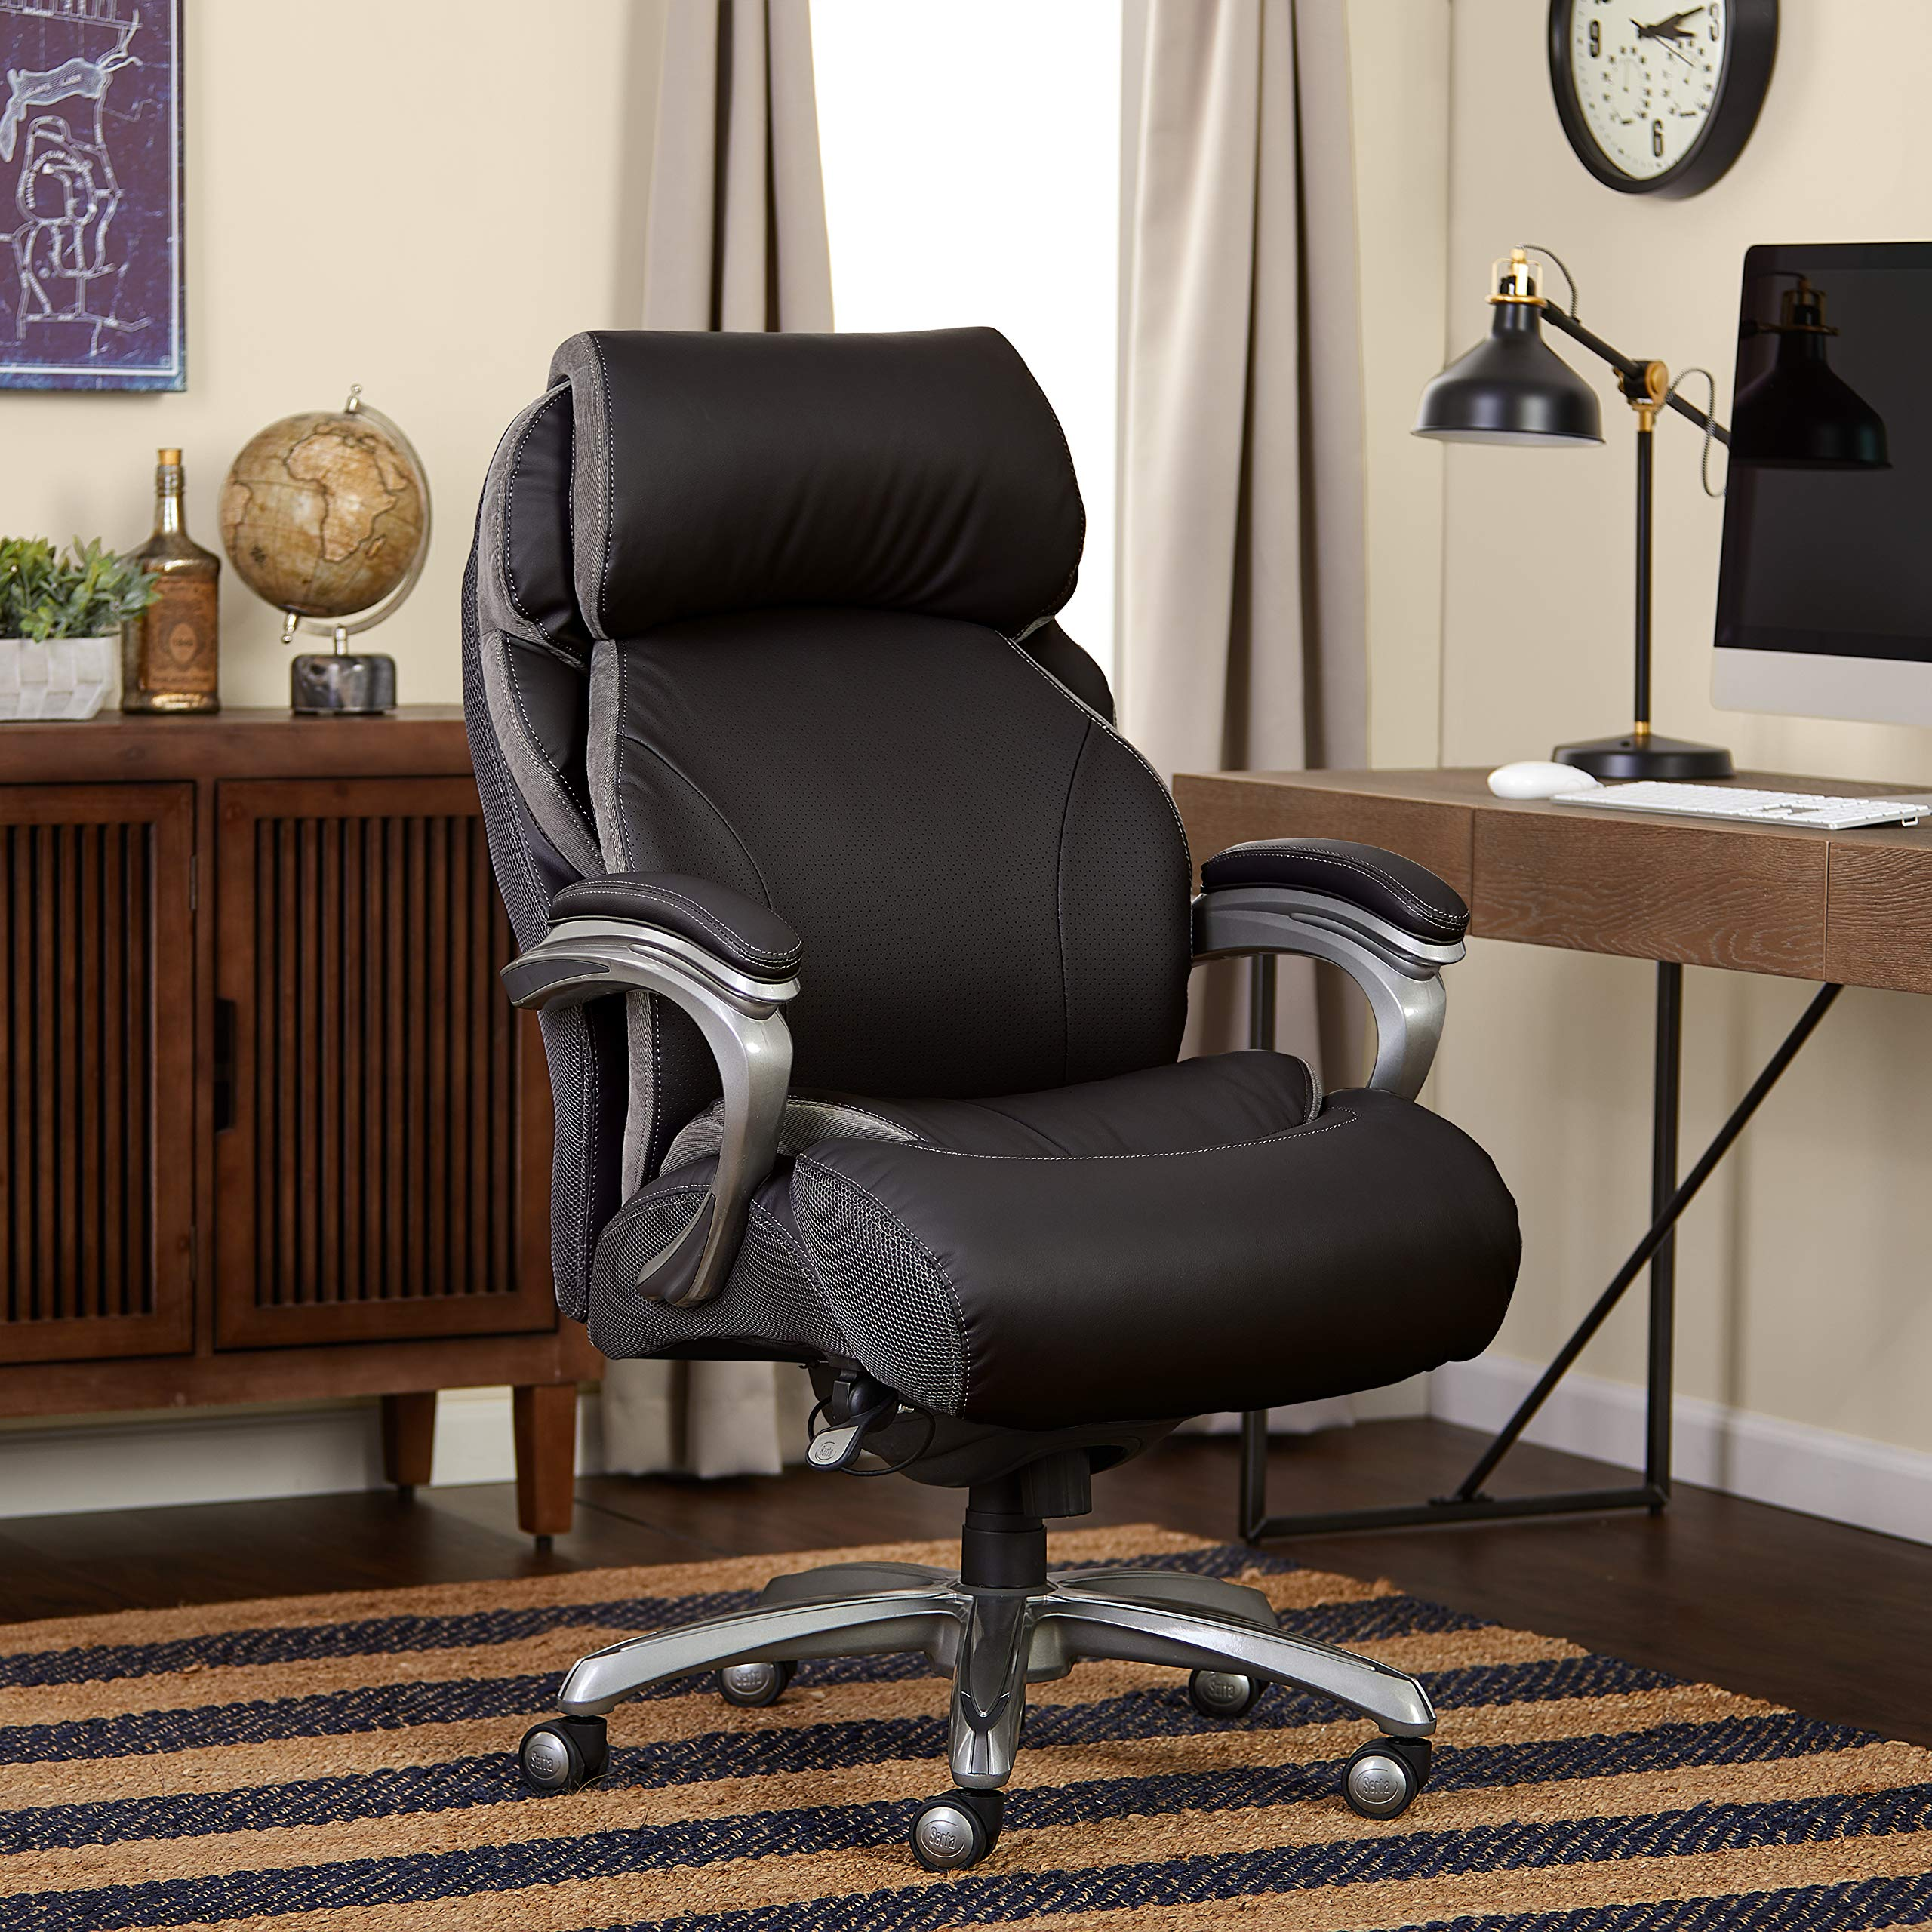 Serta Big and Tall Smart Layers Tranquility Executive Office Chair with AIR Technology, Black by Serta